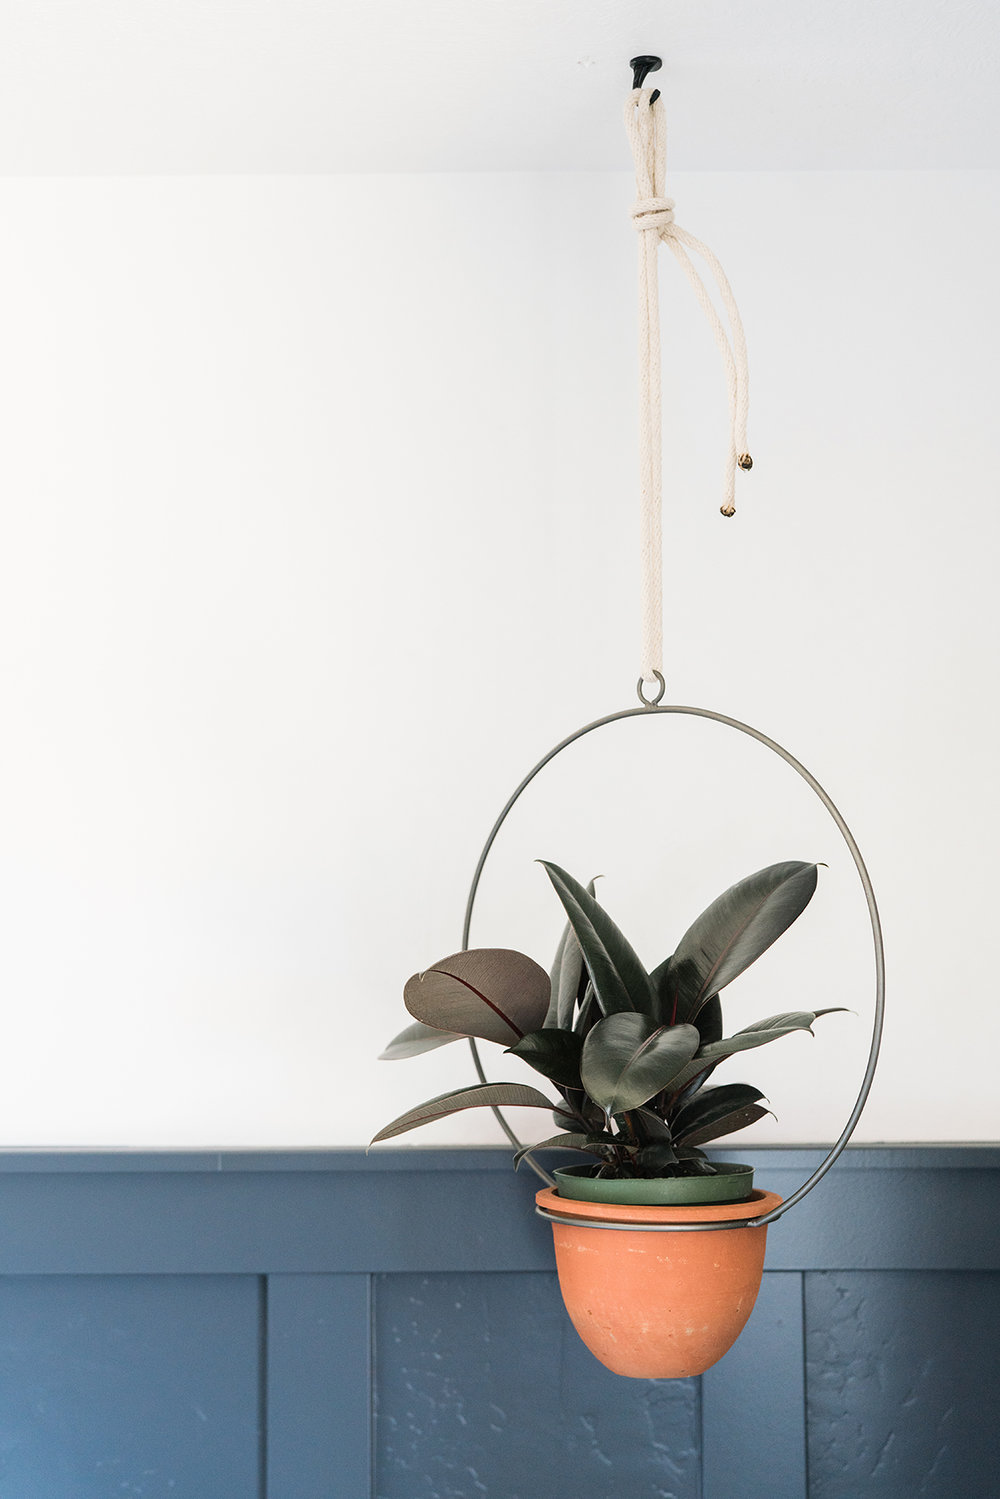 Hanging planter from McGee & Co.